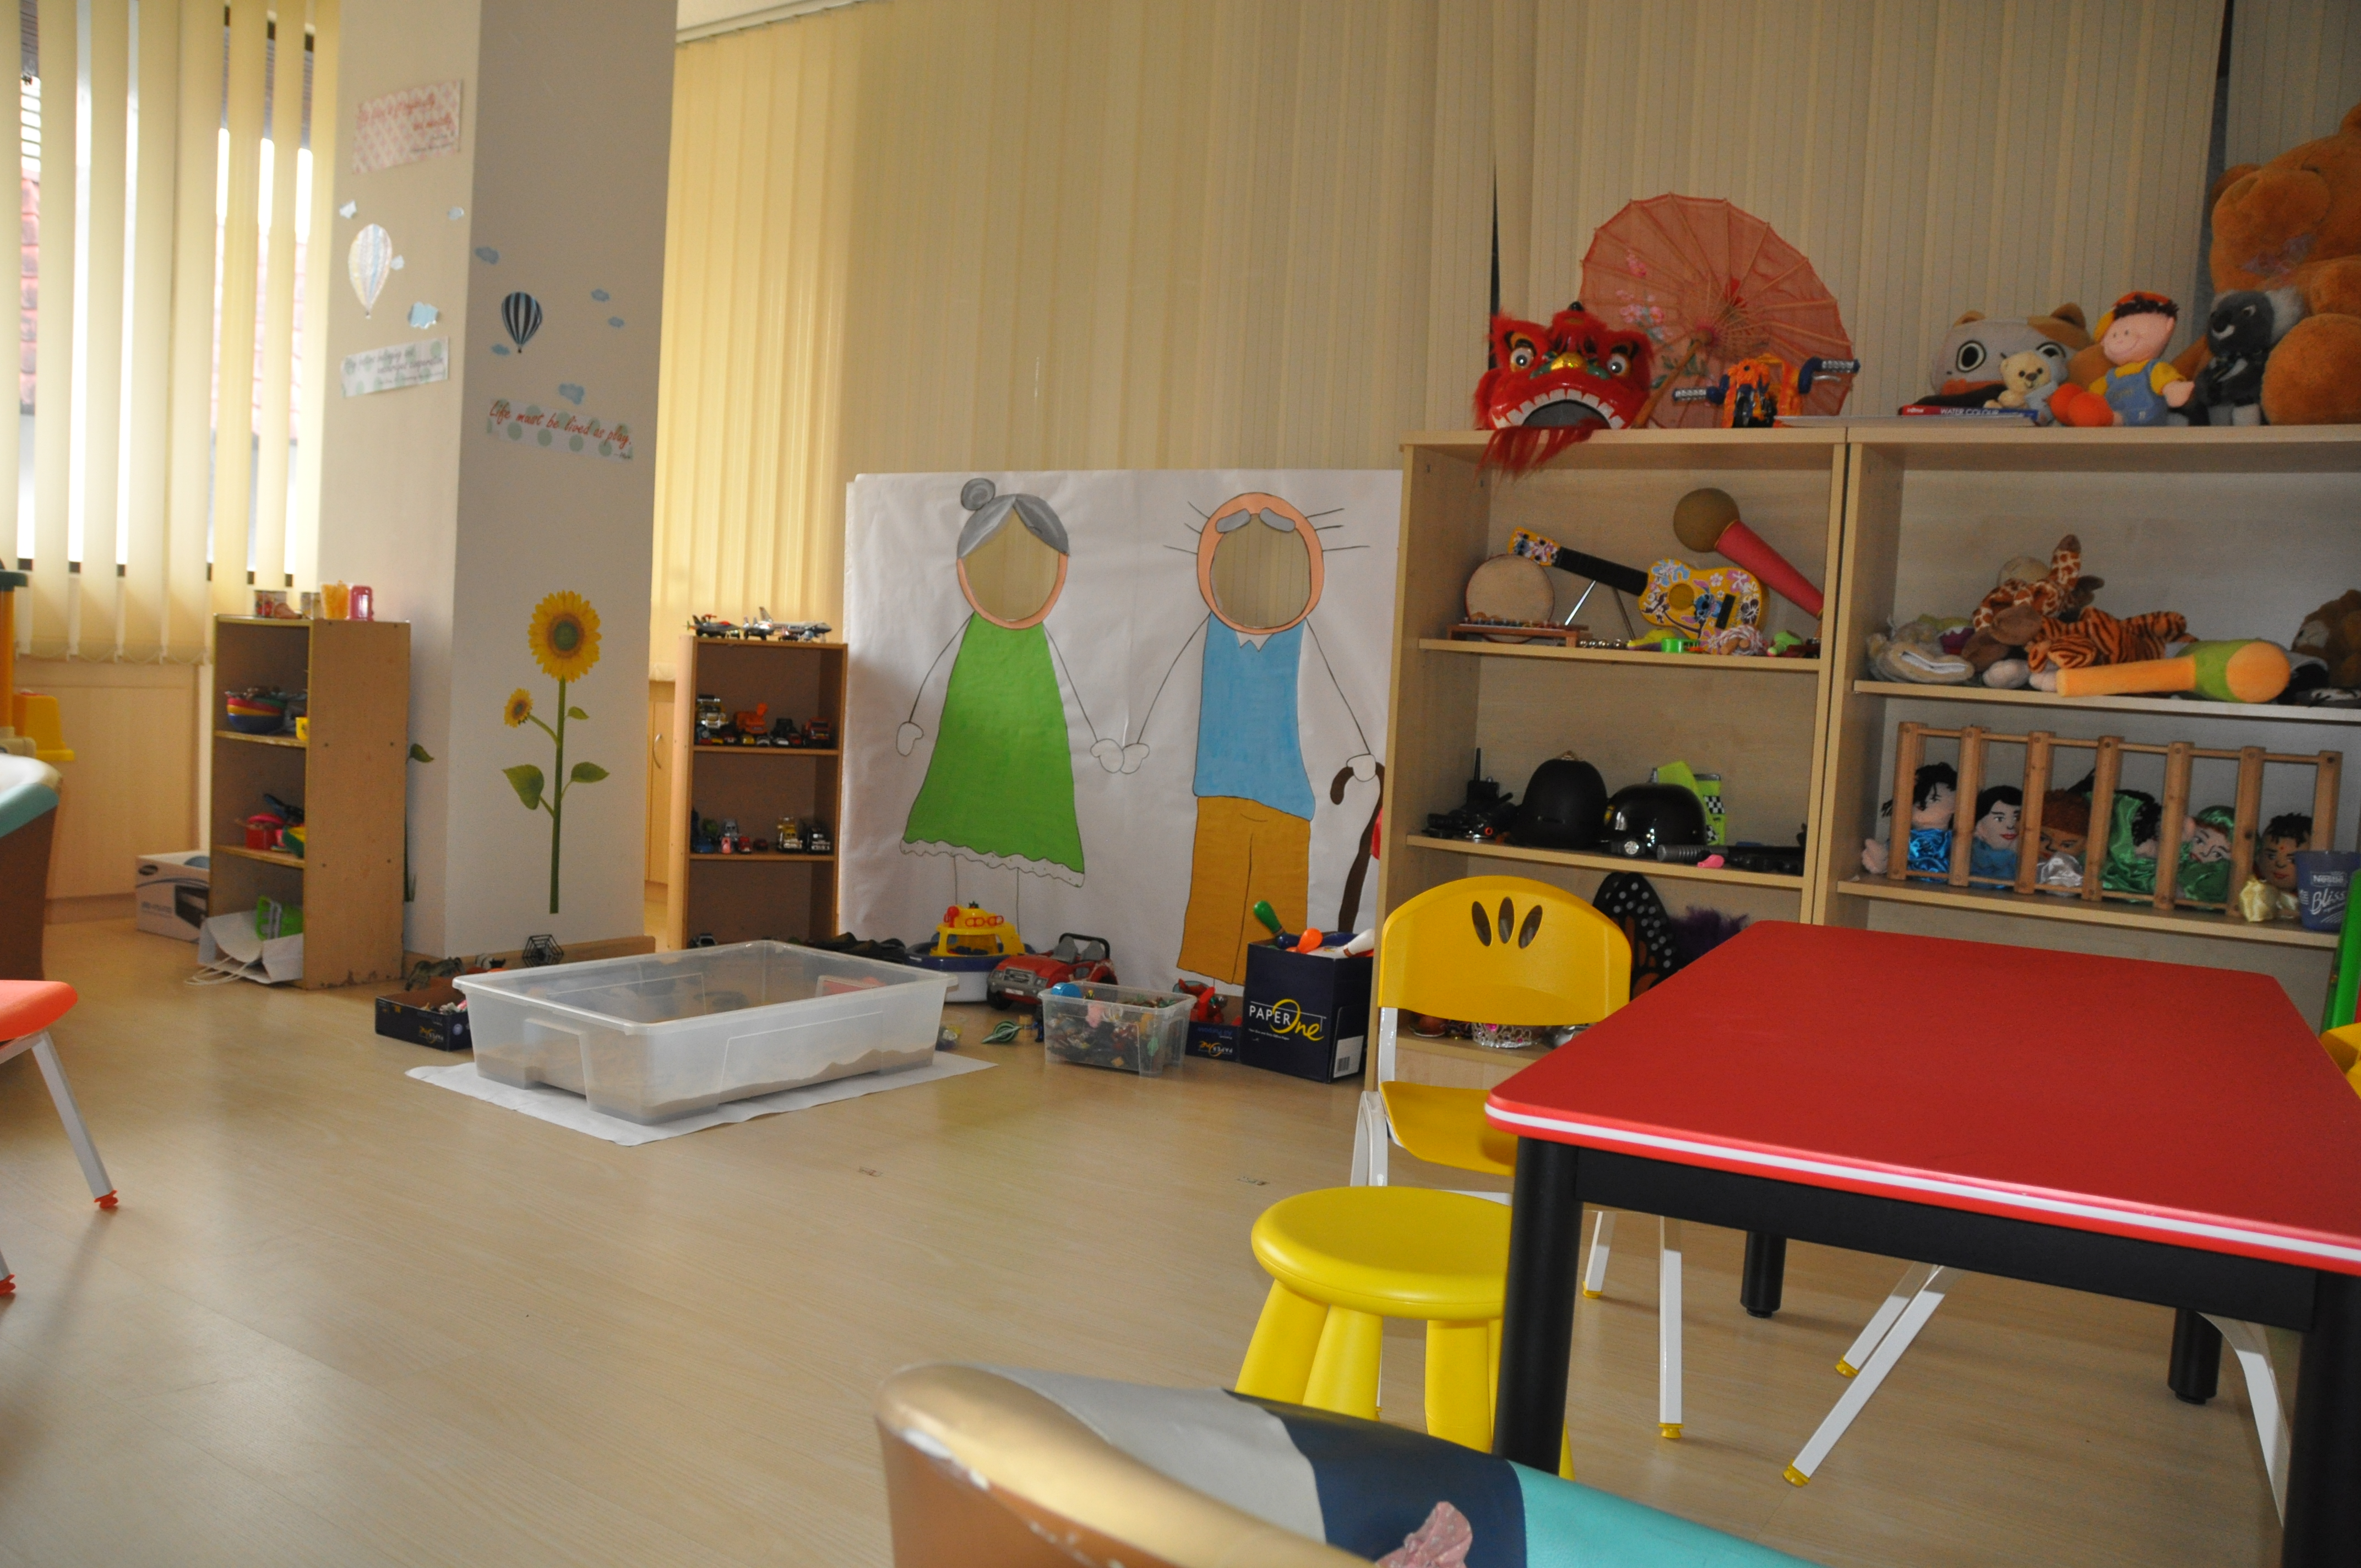 eymp2 promote learning and development Lucinda brayie centre no 363 000 eymp 2 promote learning and development in the early years 11 explain each of the areas of learning and development and.